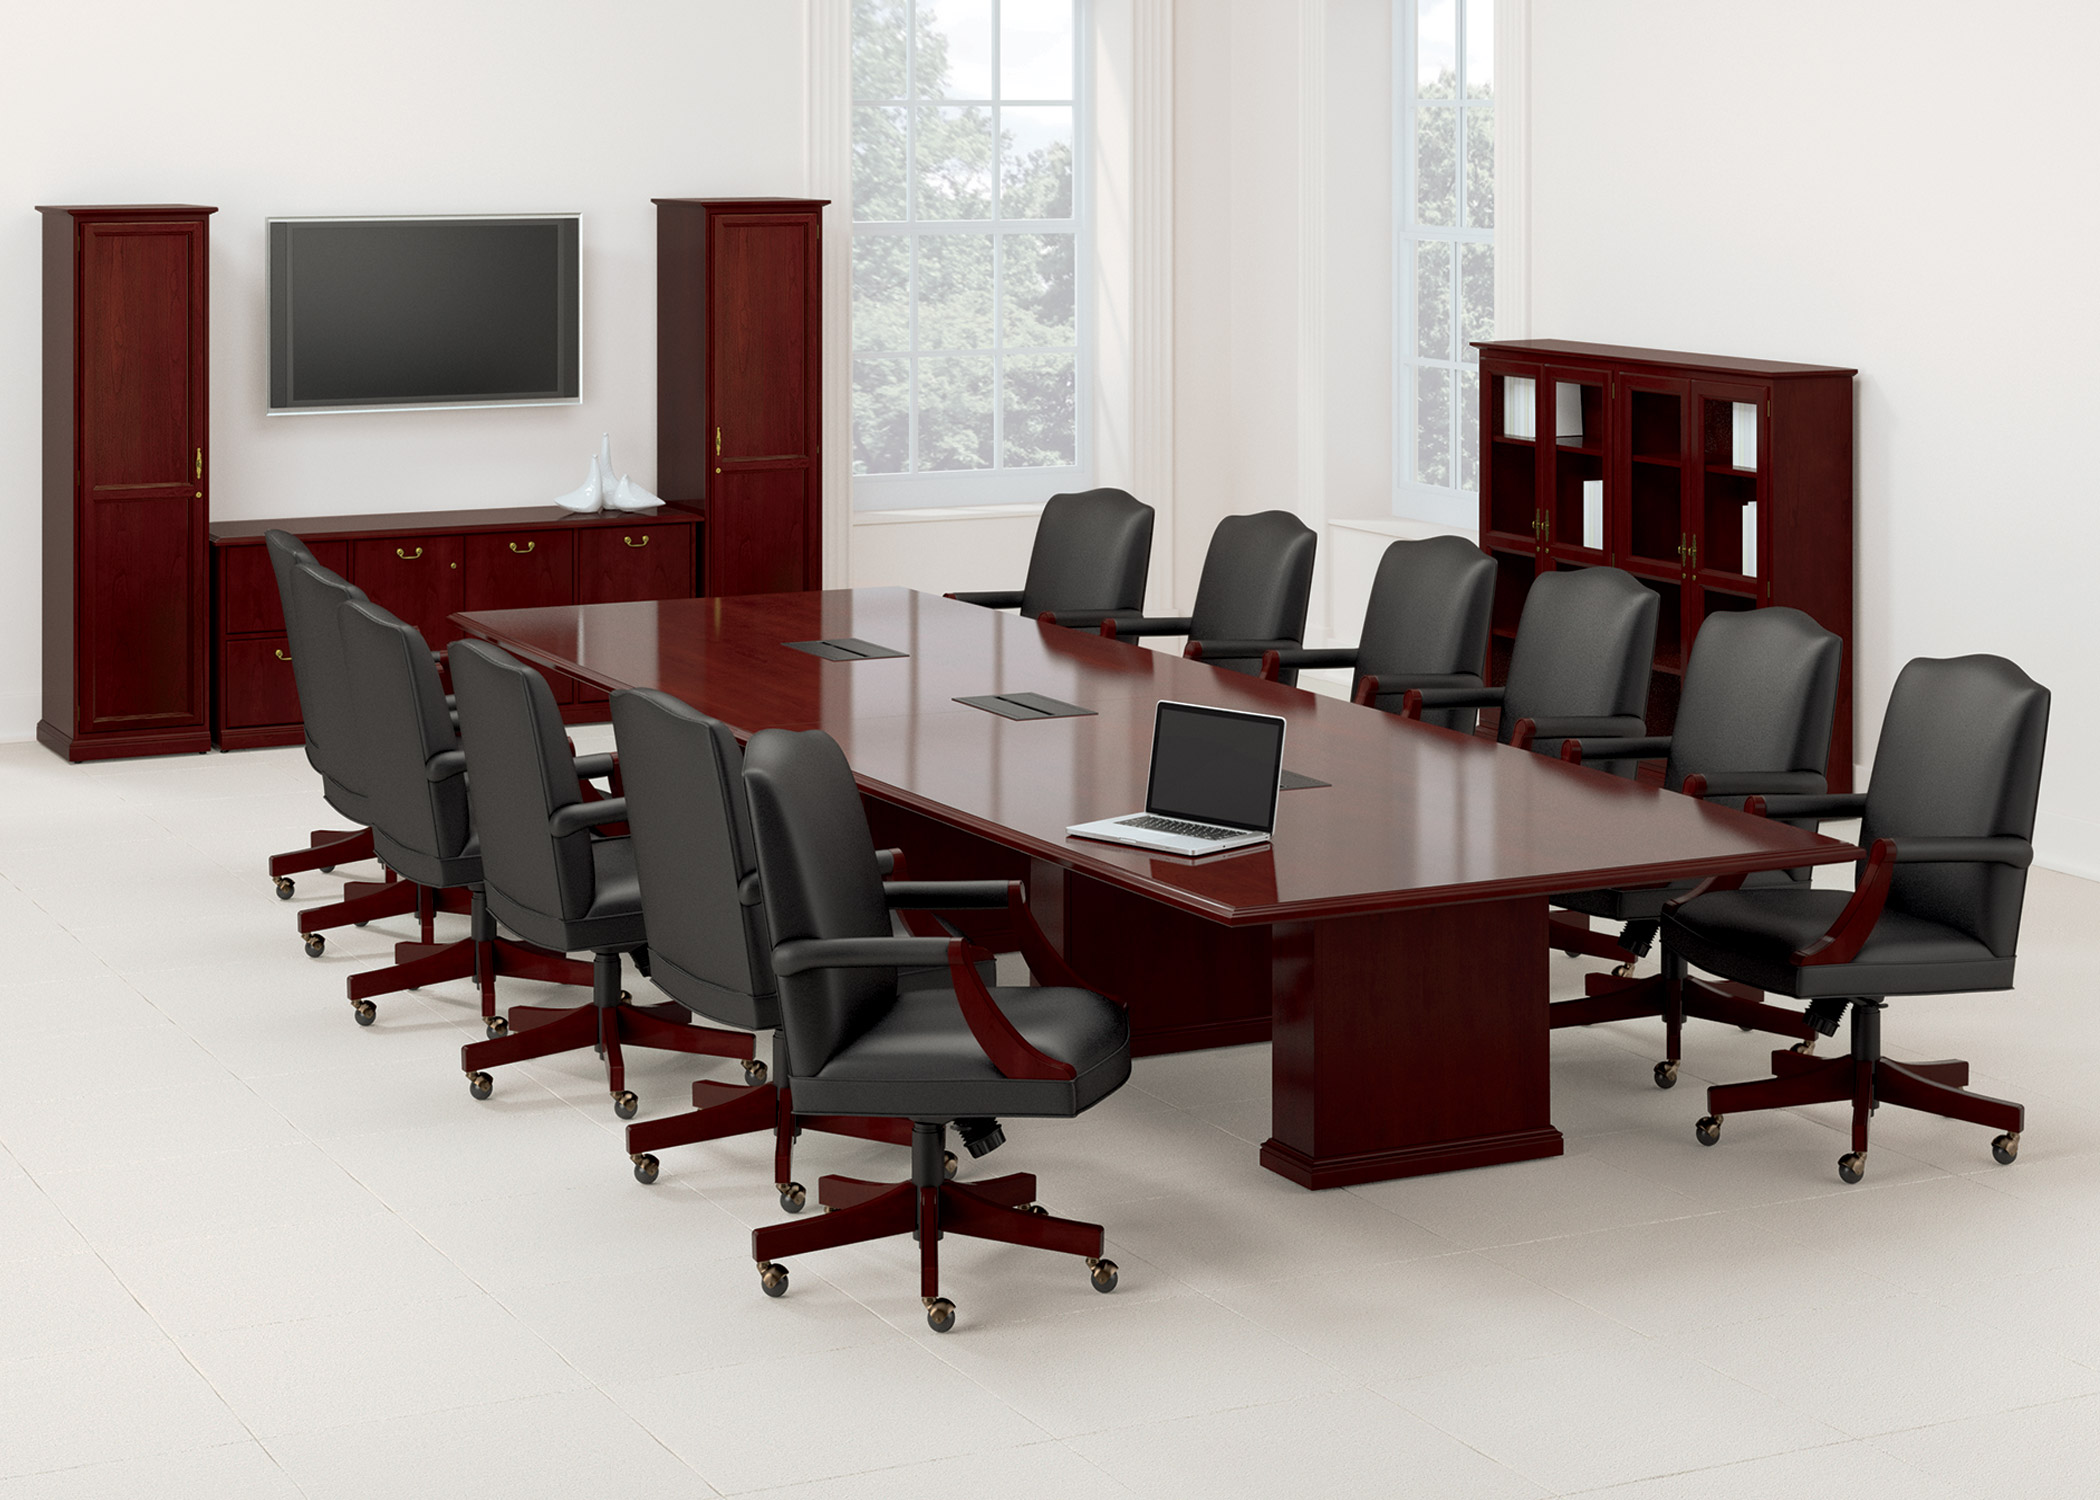 conference room tables 10 styles to choose from ubiq. Black Bedroom Furniture Sets. Home Design Ideas